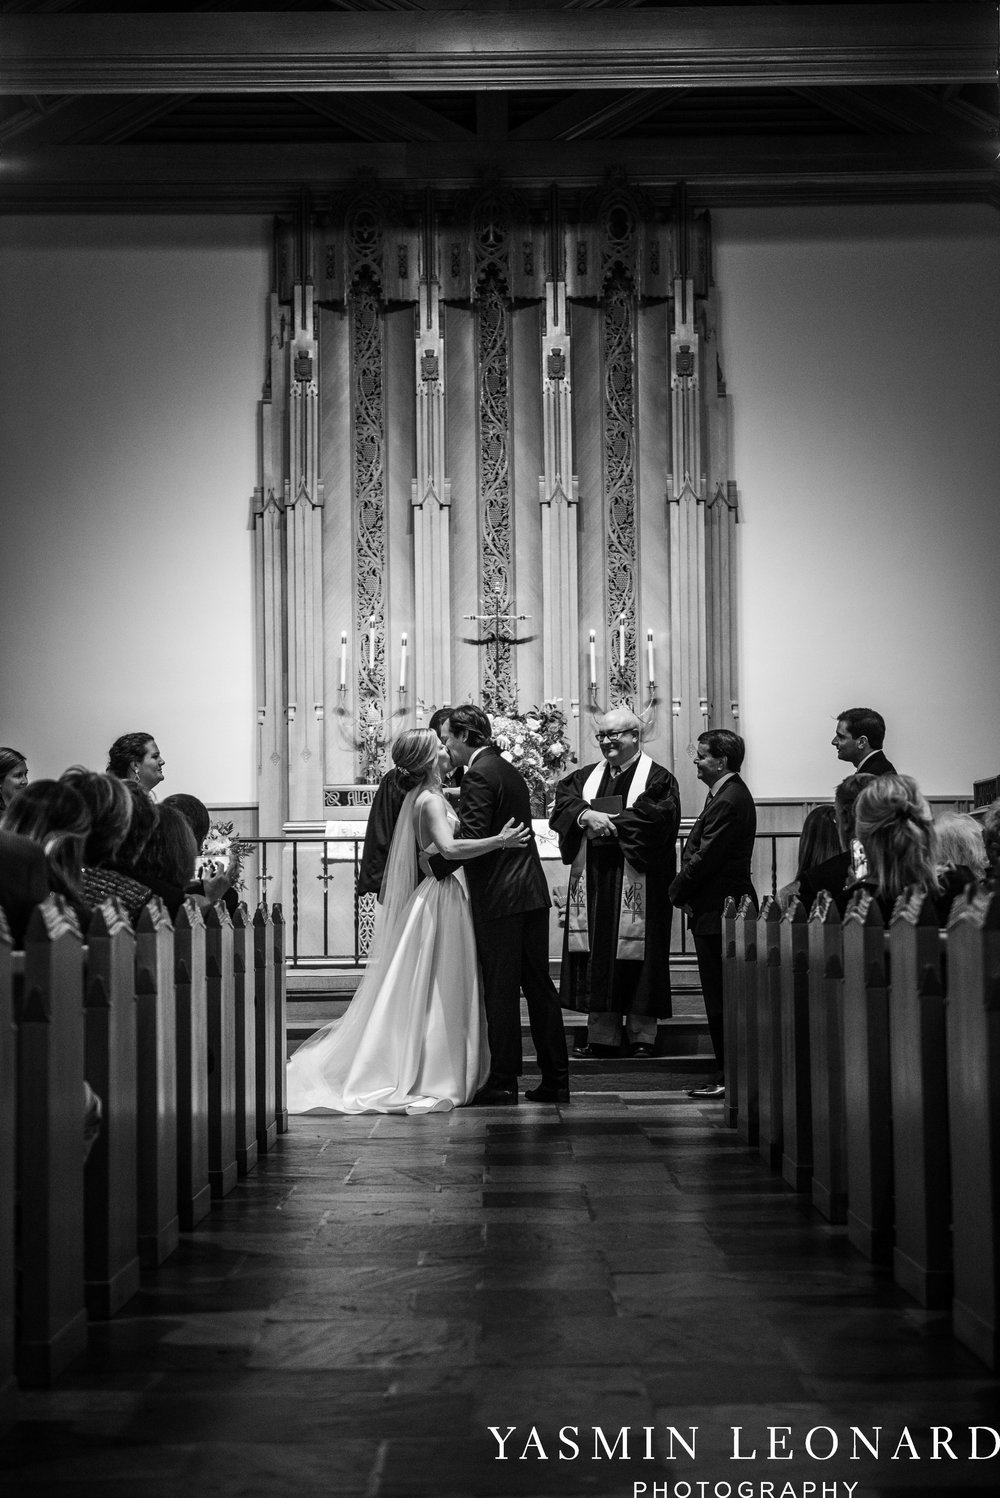 Wesley Memorial United Methodist Church - EmeryWood - High Point Weddings - High Point Wedding Photographer - NC Wedding Photographer - Yasmin Leonard Photography-28.jpg